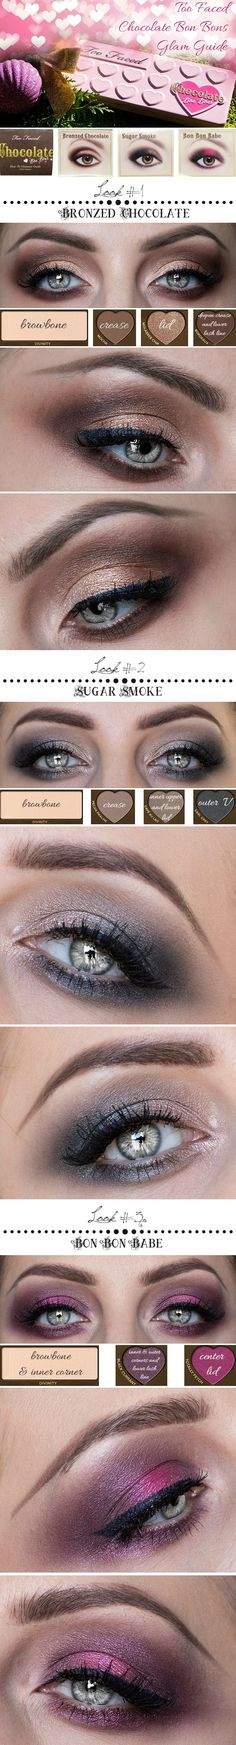 too faced chocolate bon bons palette